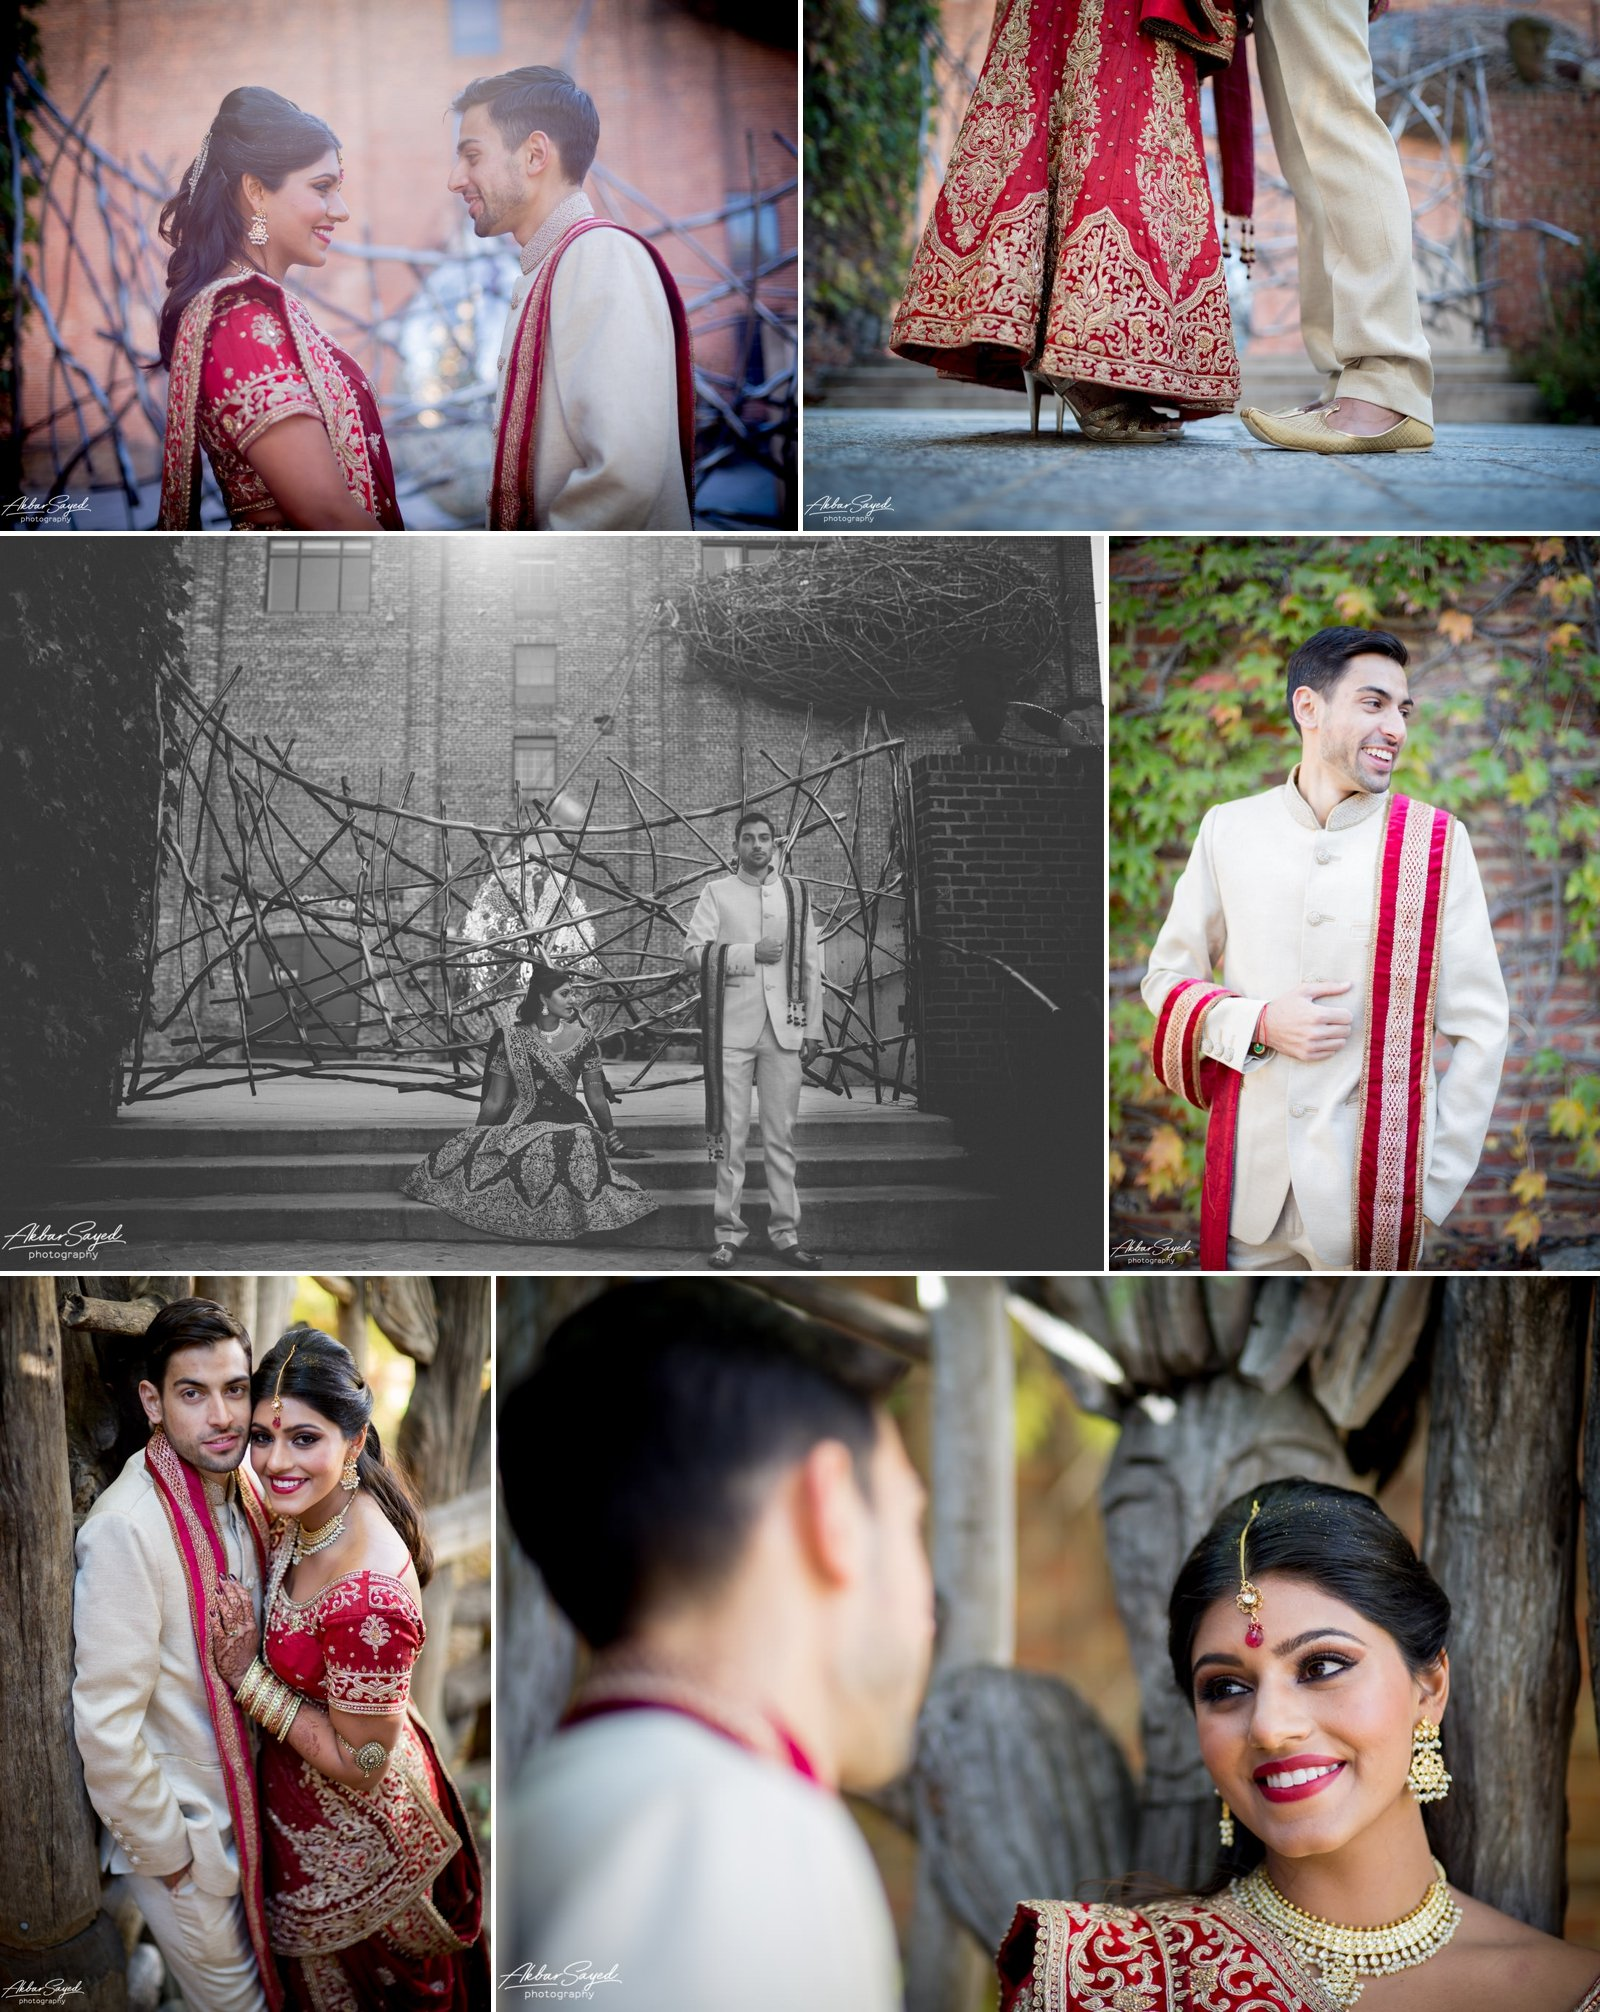 A photo collage of a Indian Bride and Iranian groom during their portrait session at their wedding at the American Visionary Art Museum in Baltimore, Maryland.